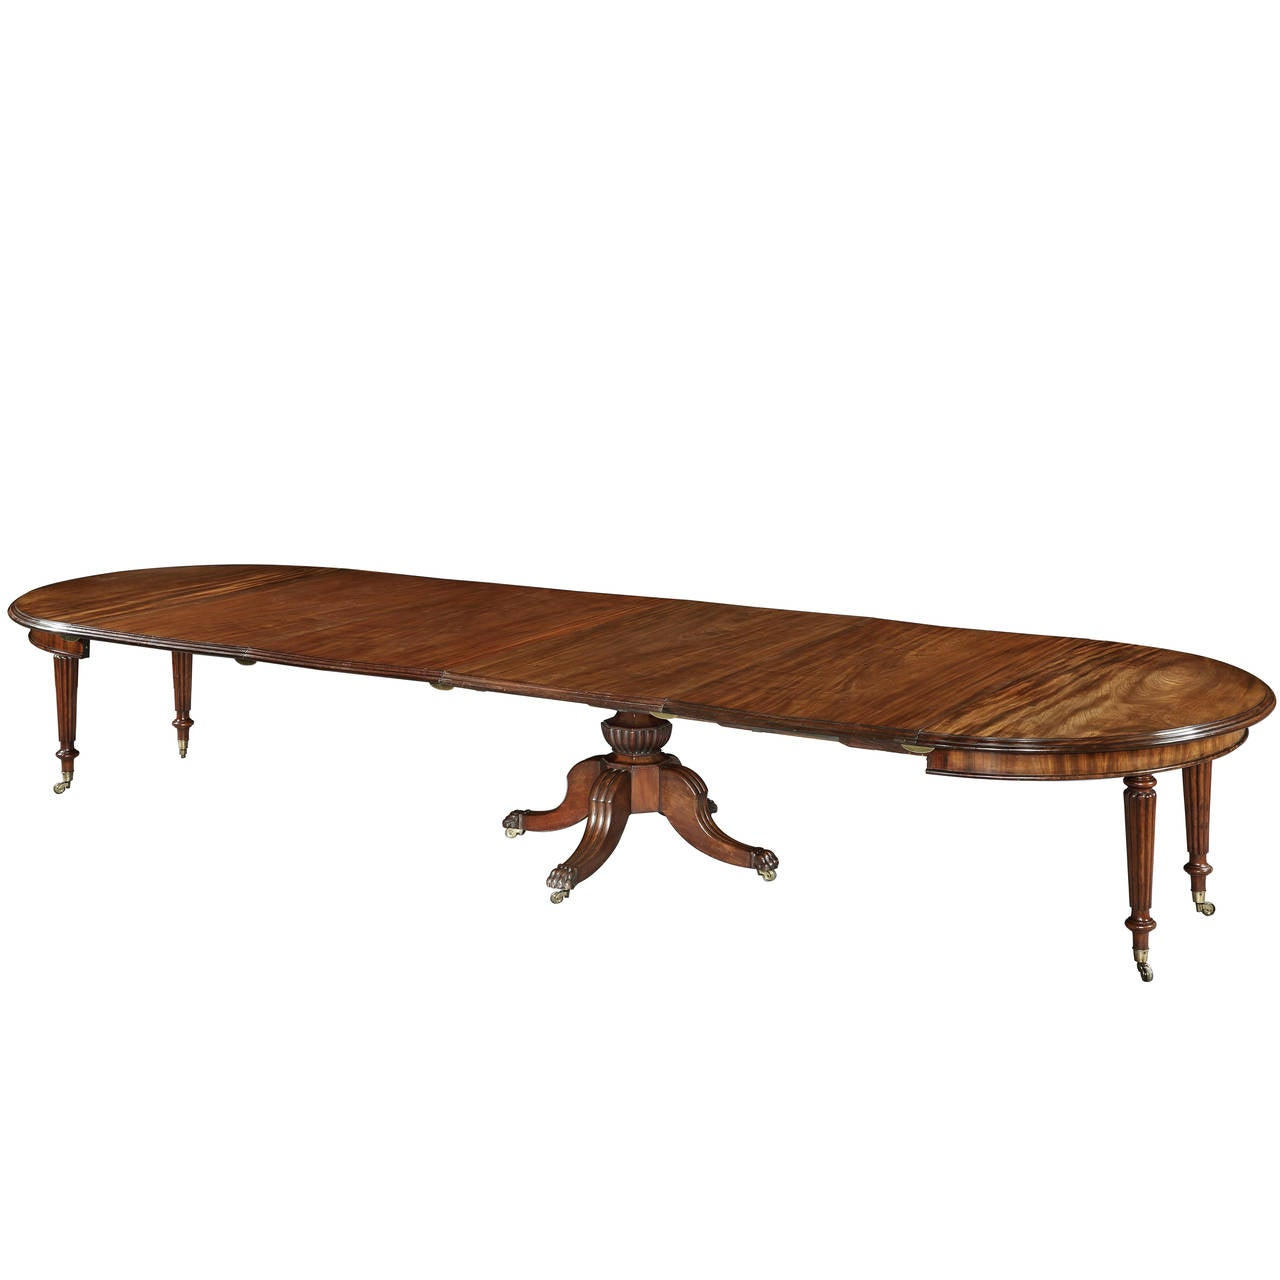 Georgian dining table at 1stdibs for Dining room table 32 wide